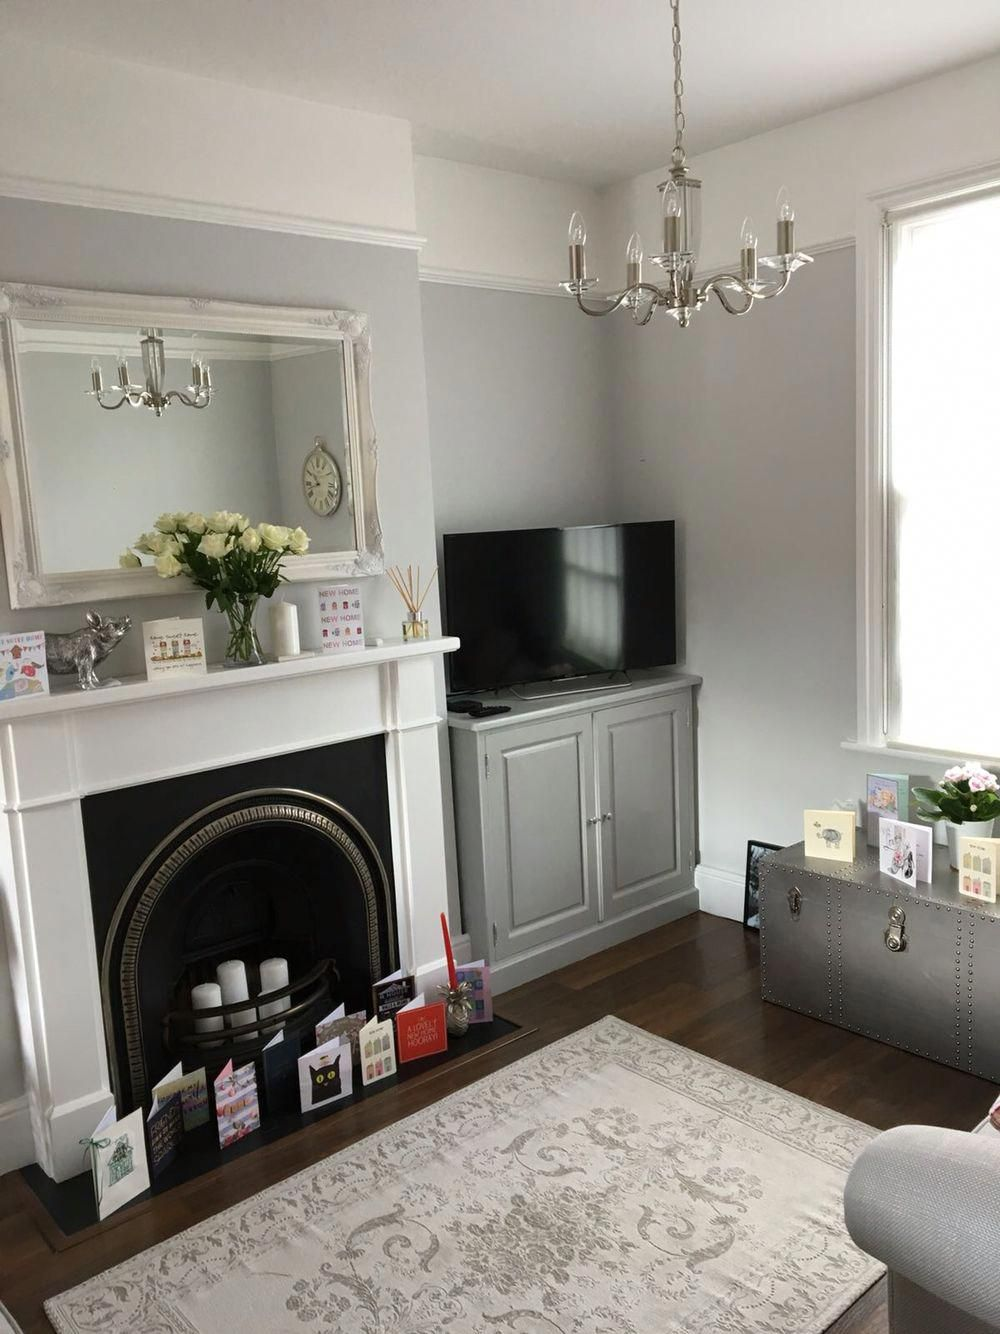 Laura Ashley Victorian Terrace Grey Living Room Living Room Lighting Josette T Living Room Grey Victorian Living Room Living Room Ideas Victorian Terrace